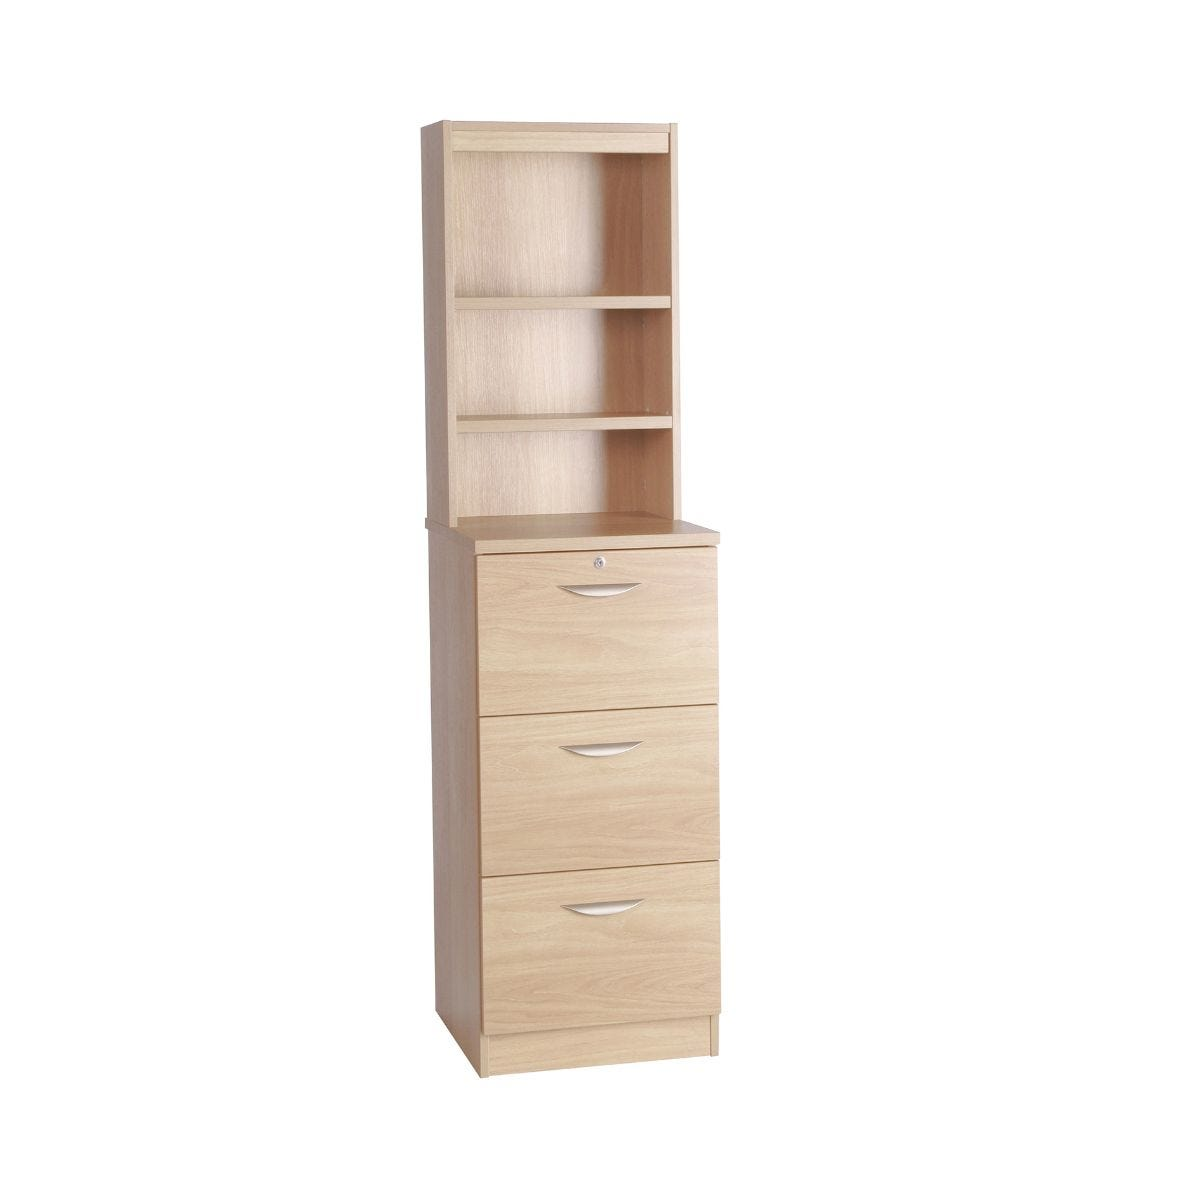 R White 3 Drawer Cabinet with Overshelving, Beech